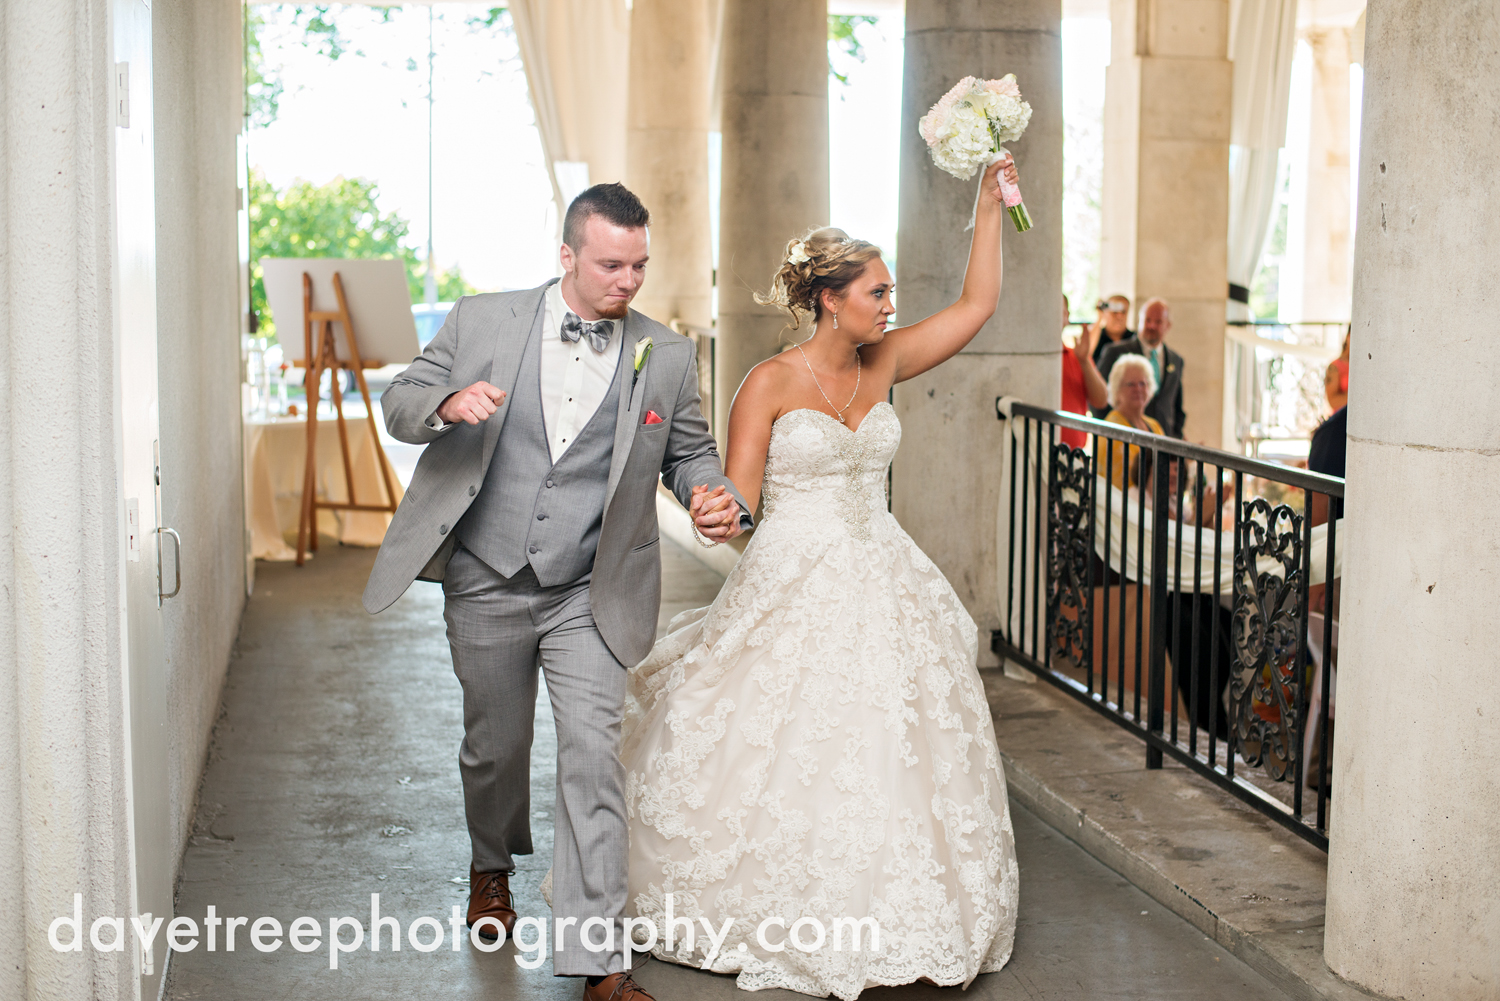 veranda_wedding_photographer_st_joseph_wedding_123.jpg